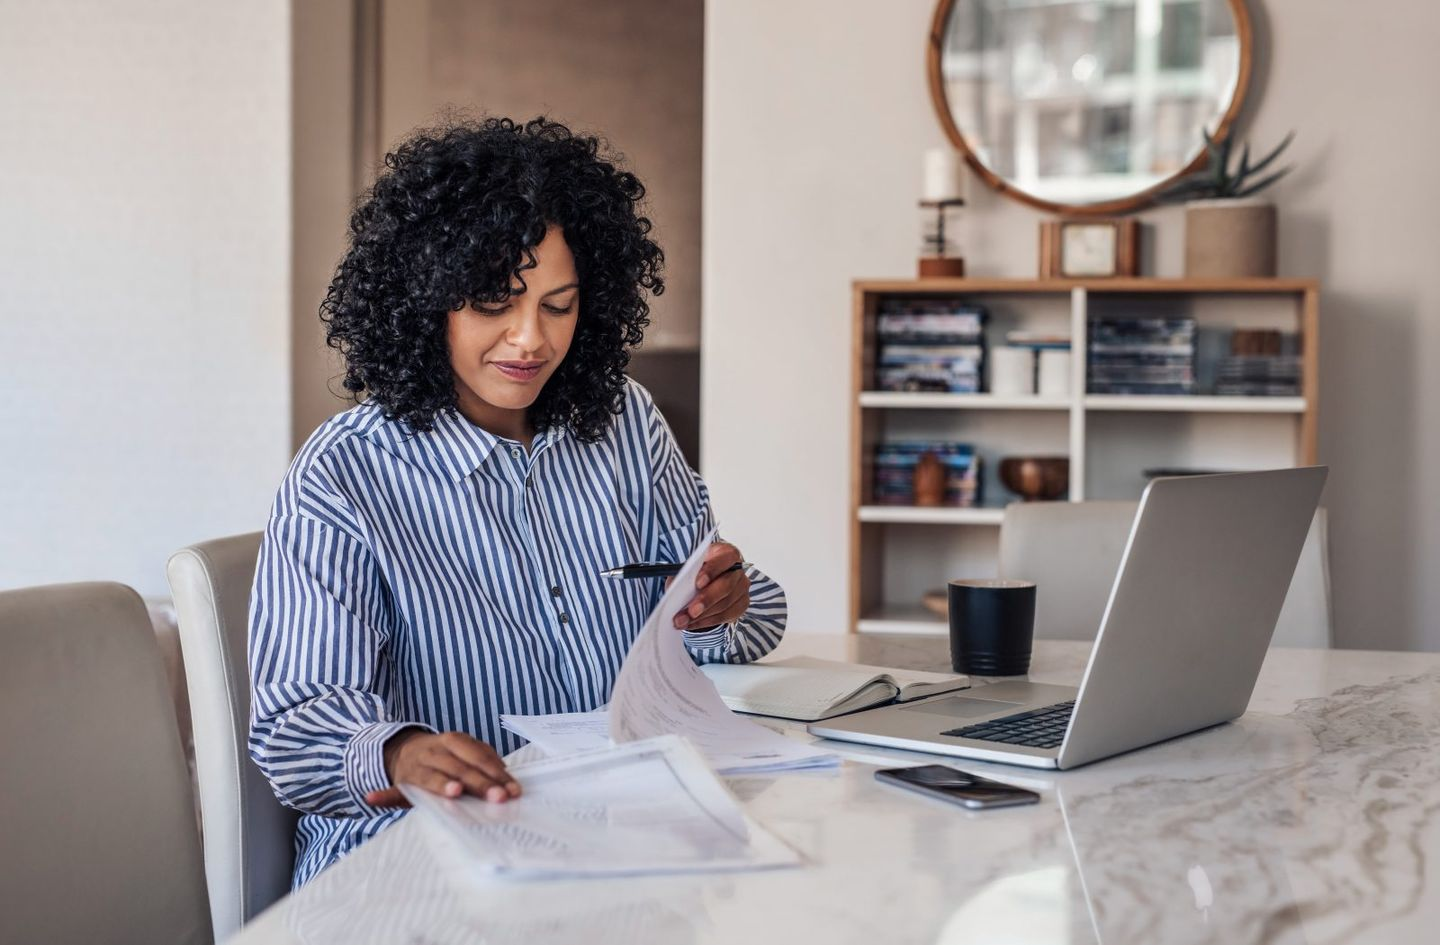 Smiling female entrepreneur going through paperwork at her dining table